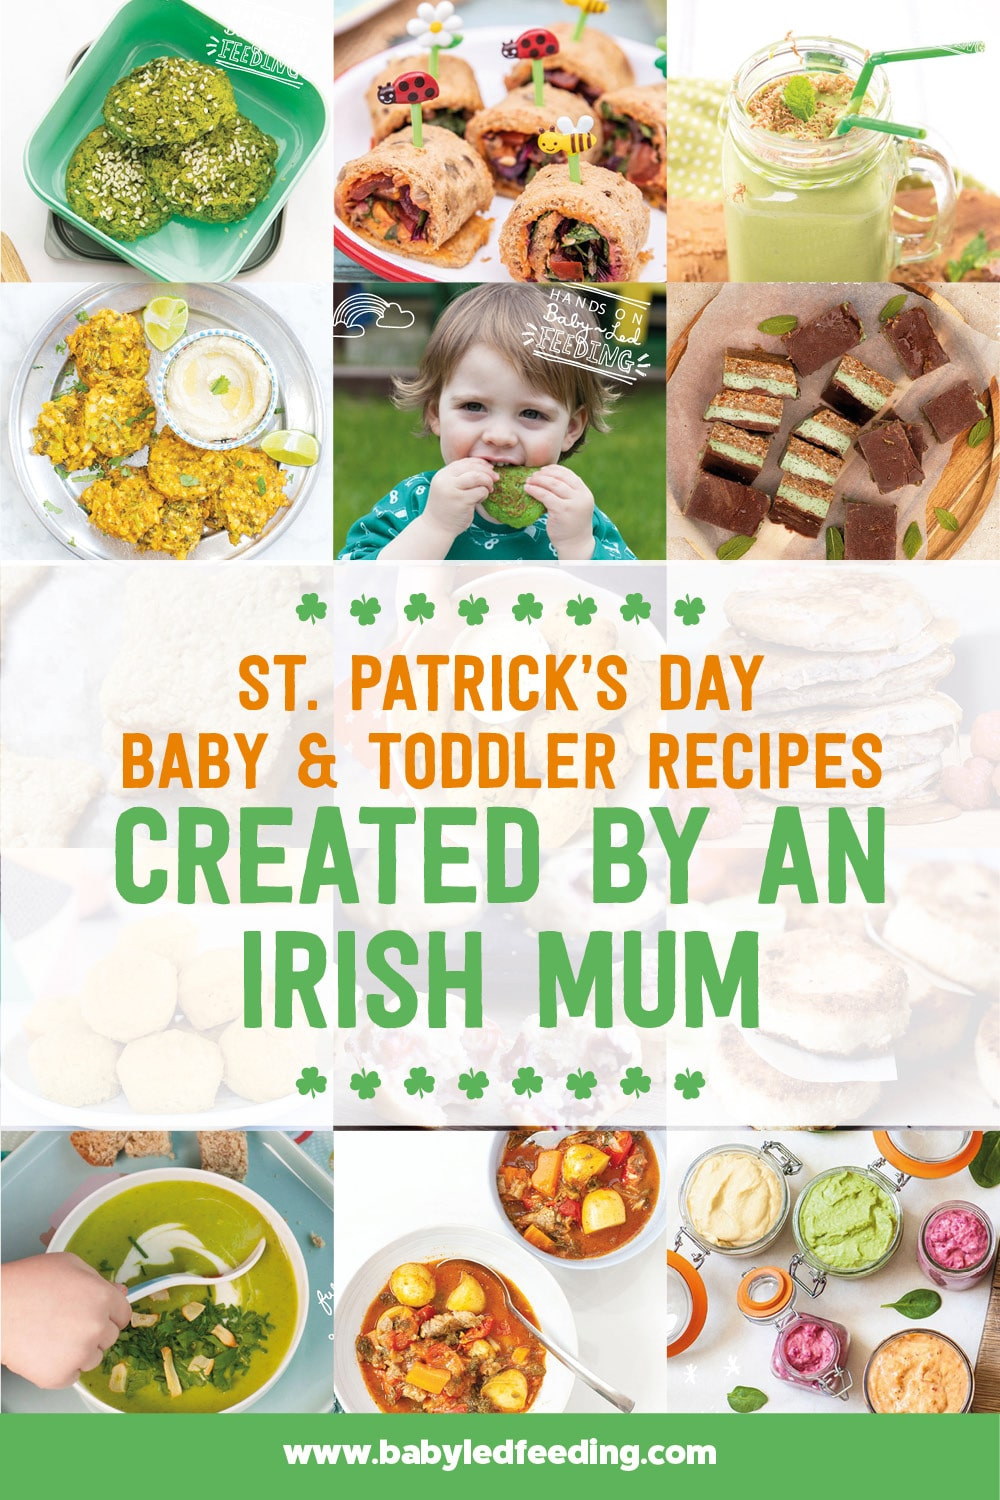 St. Patricks Day Recipes for kids created by an Irish Mum! Healthy recipe that are baby and toddler-friendly. Healthy shamrock shake, veggie-loaded mini cottage pies, refined sugar-free mint chocolate slice, traditional Irish stew, and seafood chowder... Irish party recipe for a fun Saint Patrick's Day! #stpatricksday #Irishfood #irish #kissmeimirish #babyledweaning #kidpartyfood #appetizers